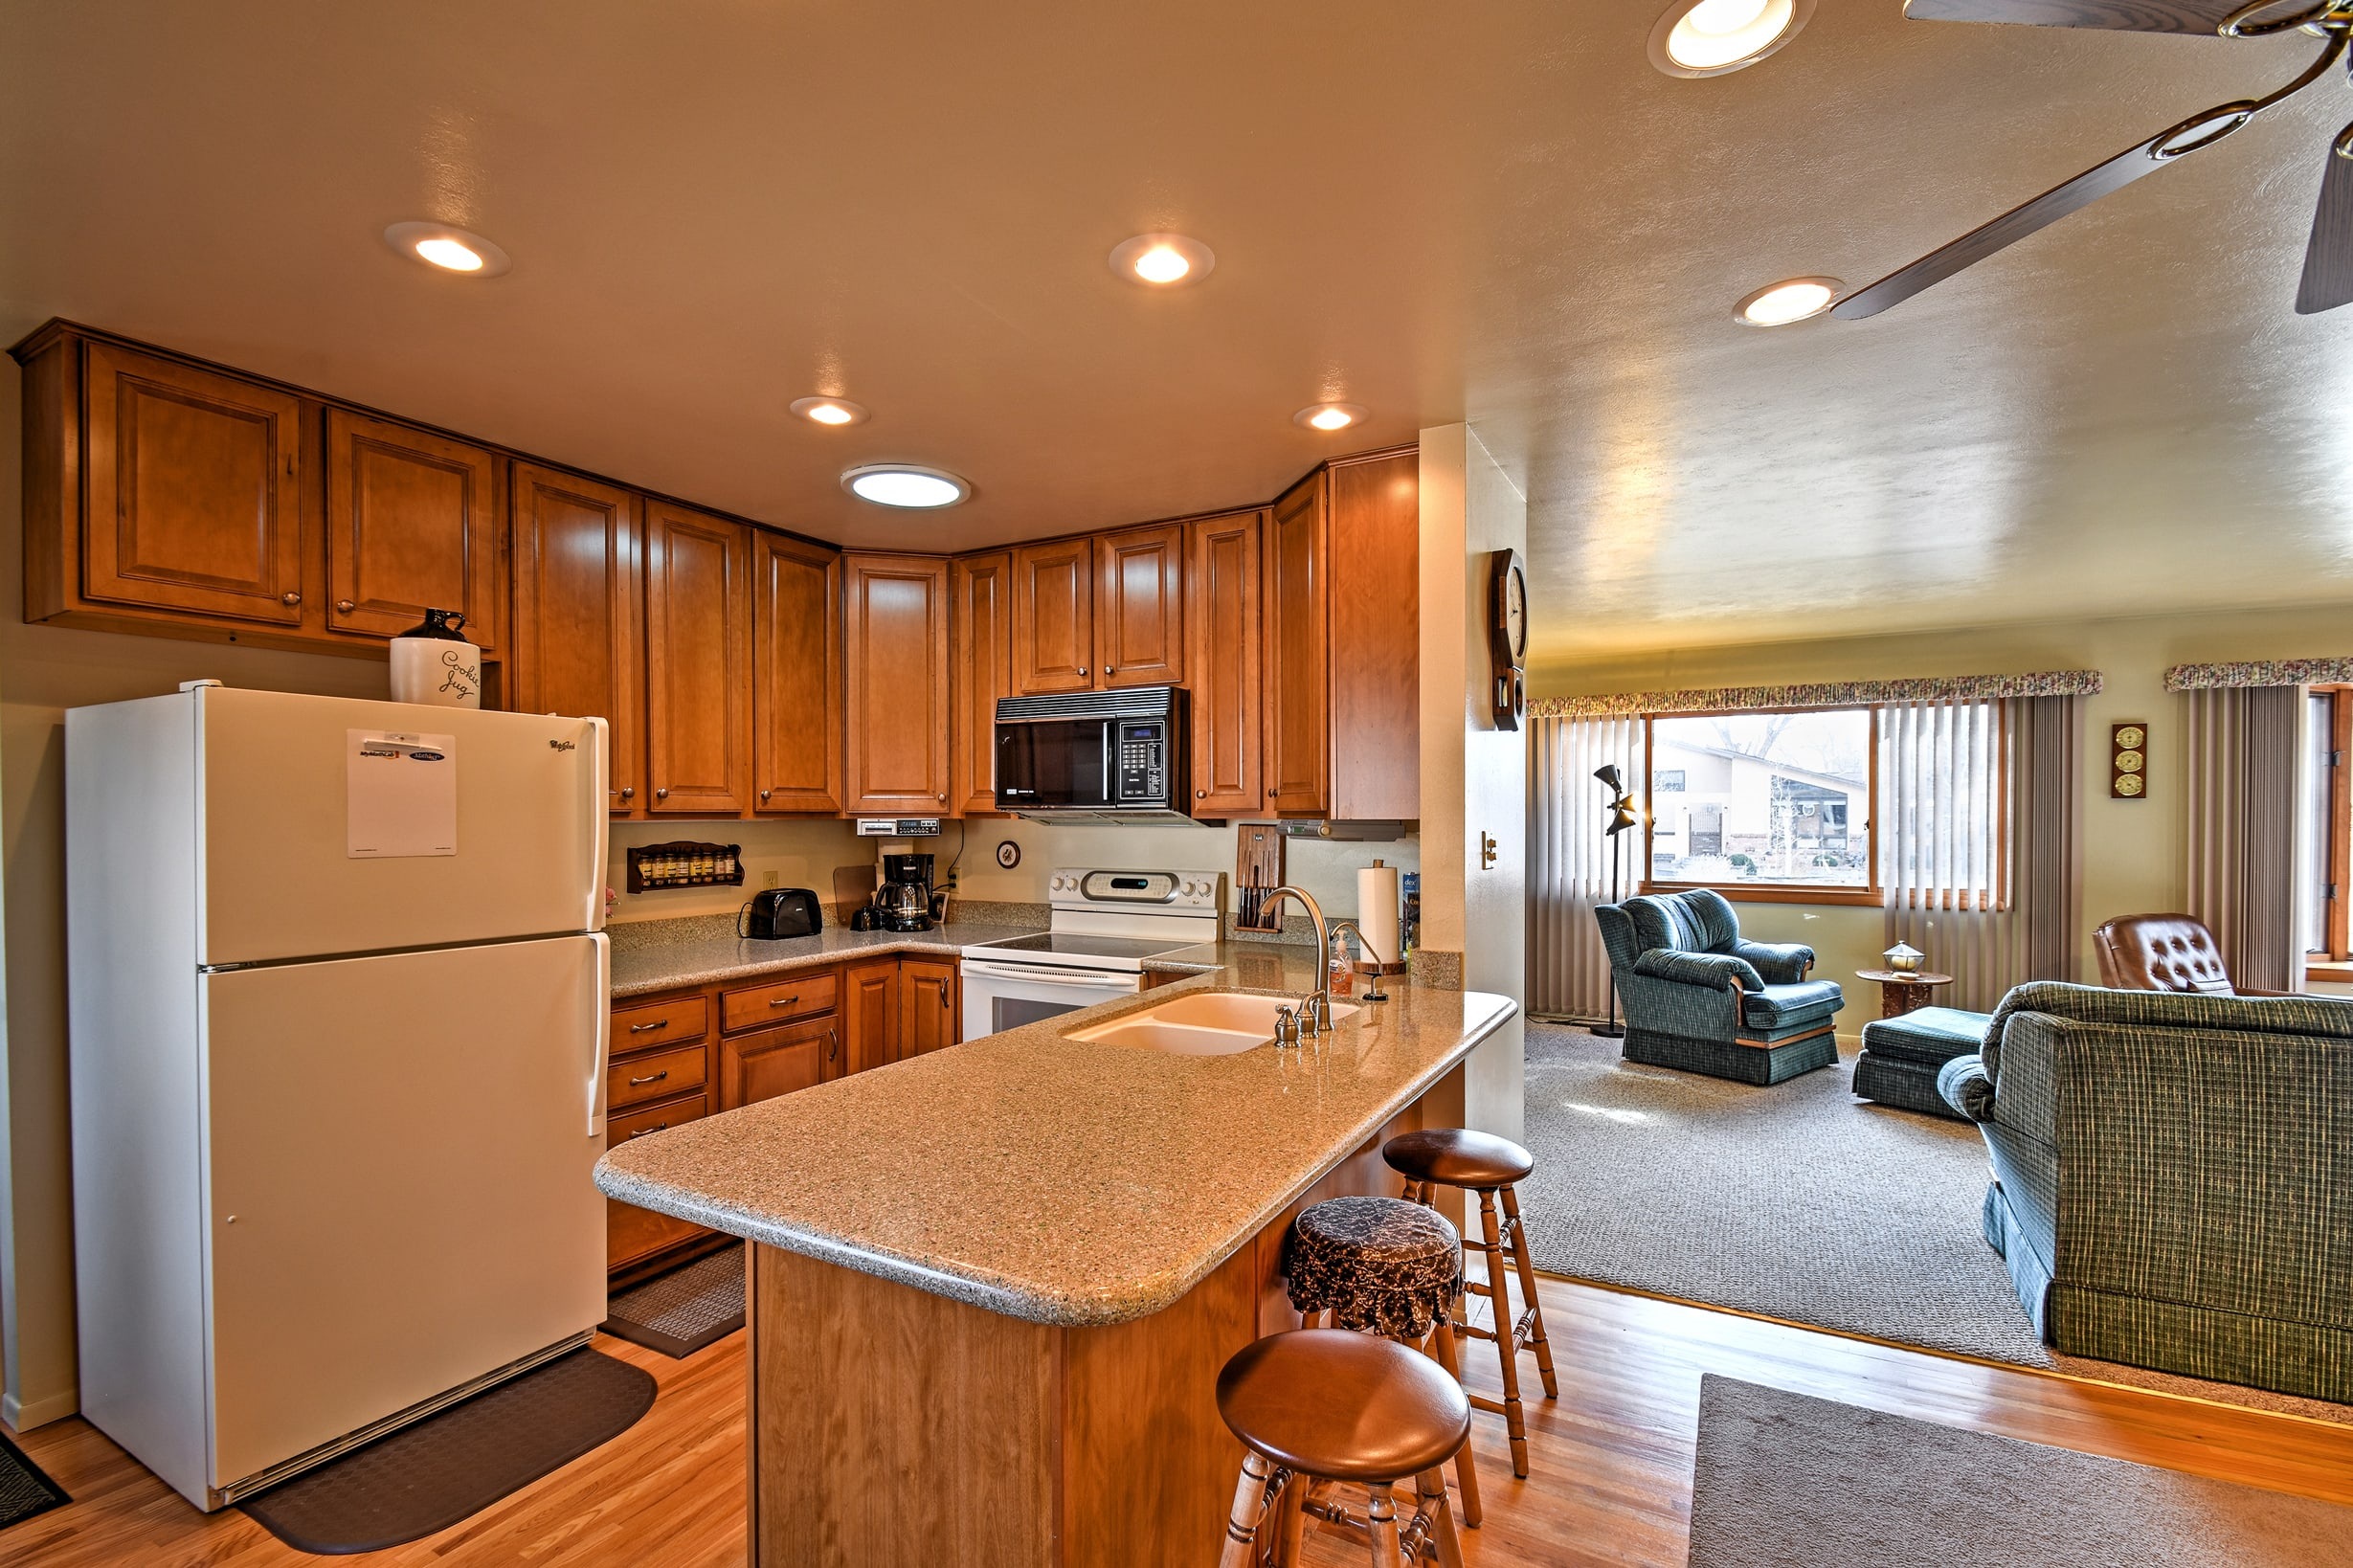 Prepare your favorite meals in the fully equipped kitchen.